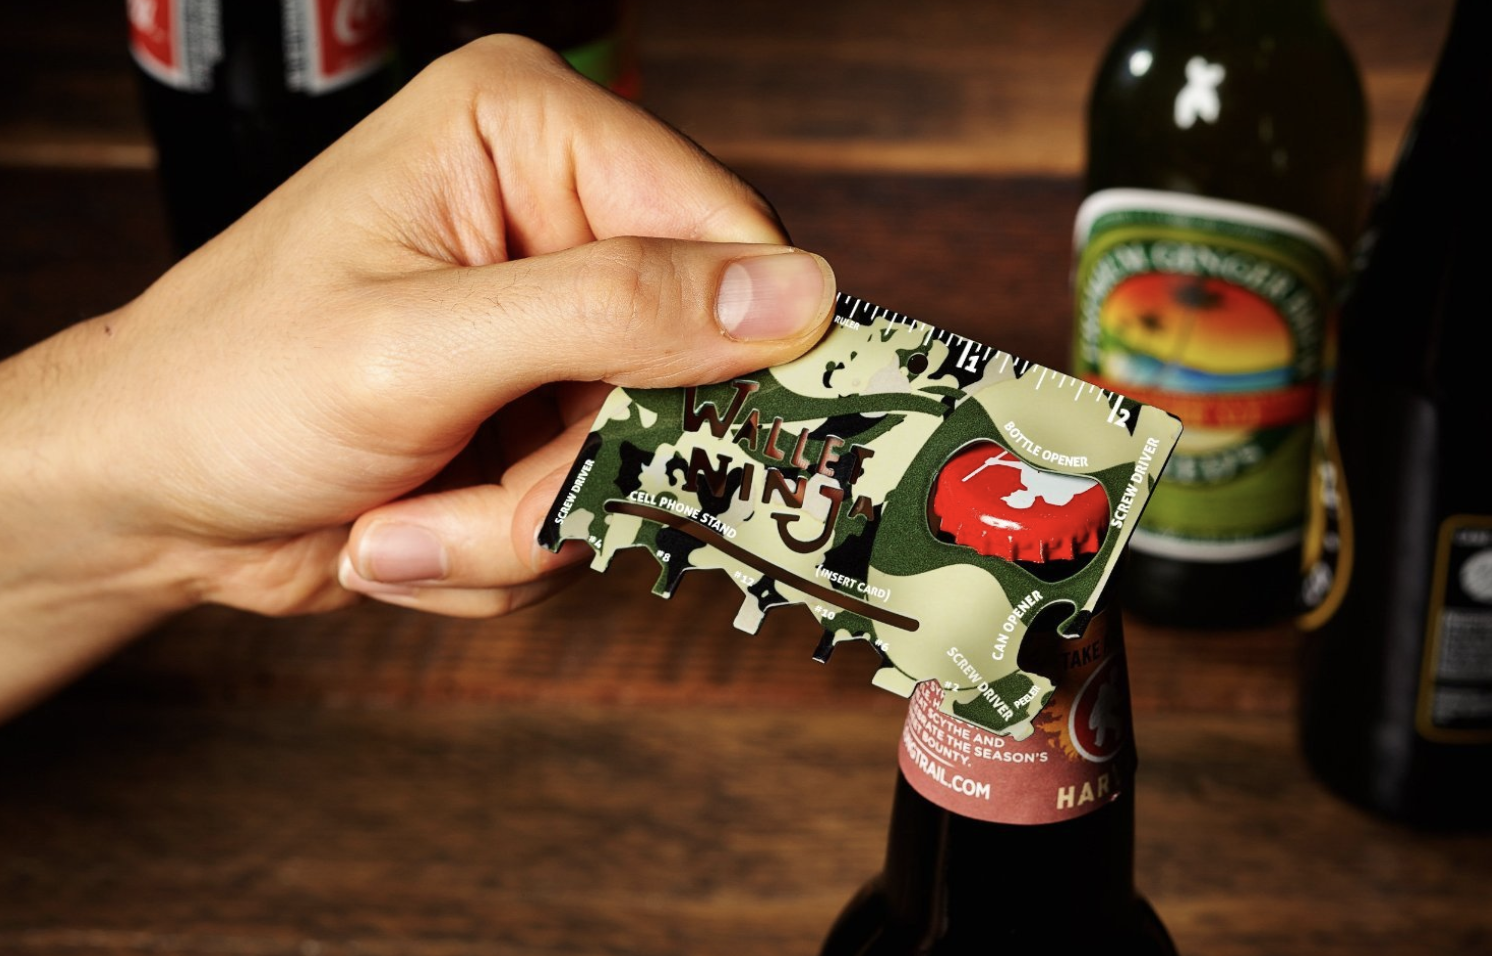 Hand uses camo print 18-in-1 multi-purpose pocket tool to open beer bottle